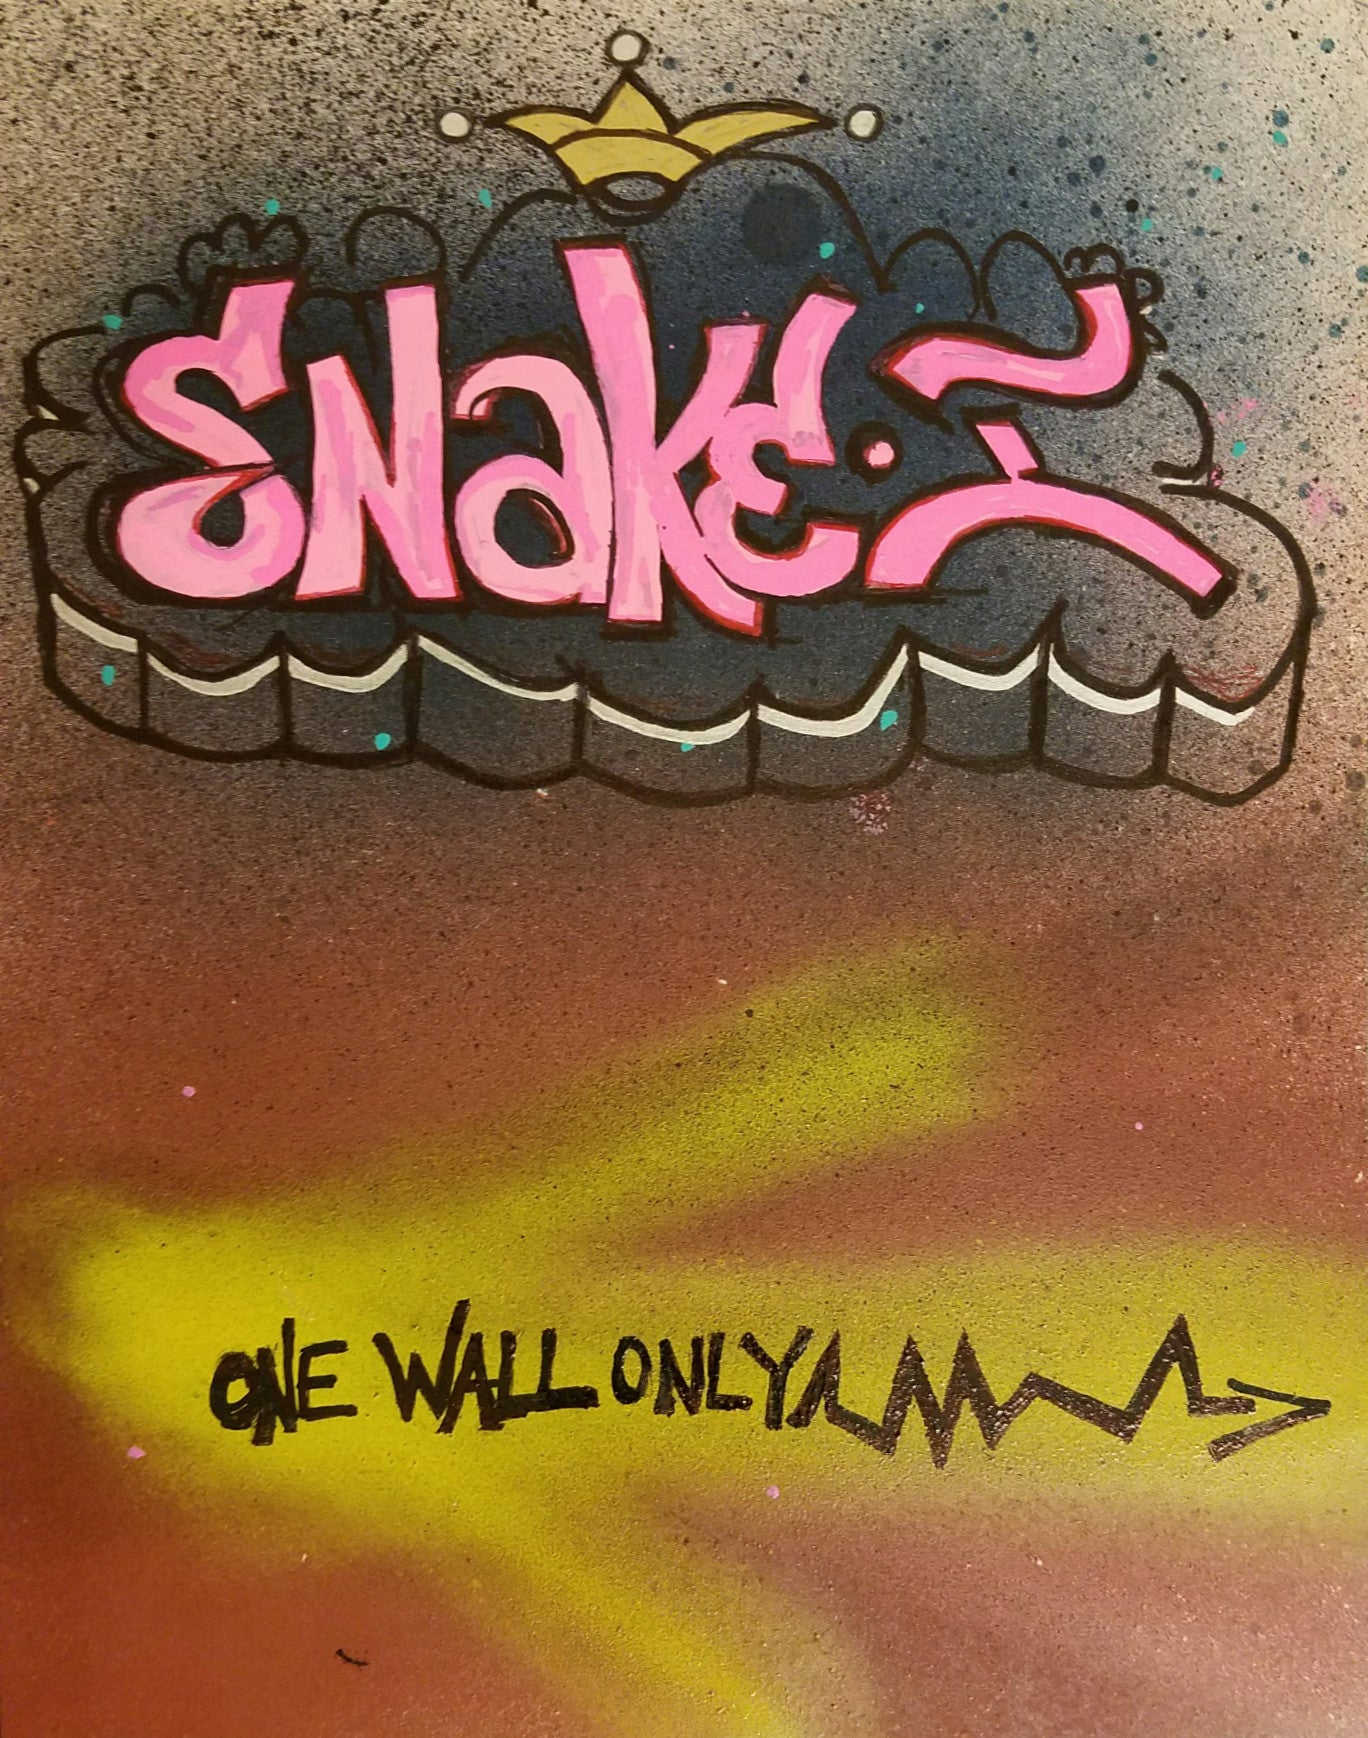 Snake 1 one wall only black book drawing